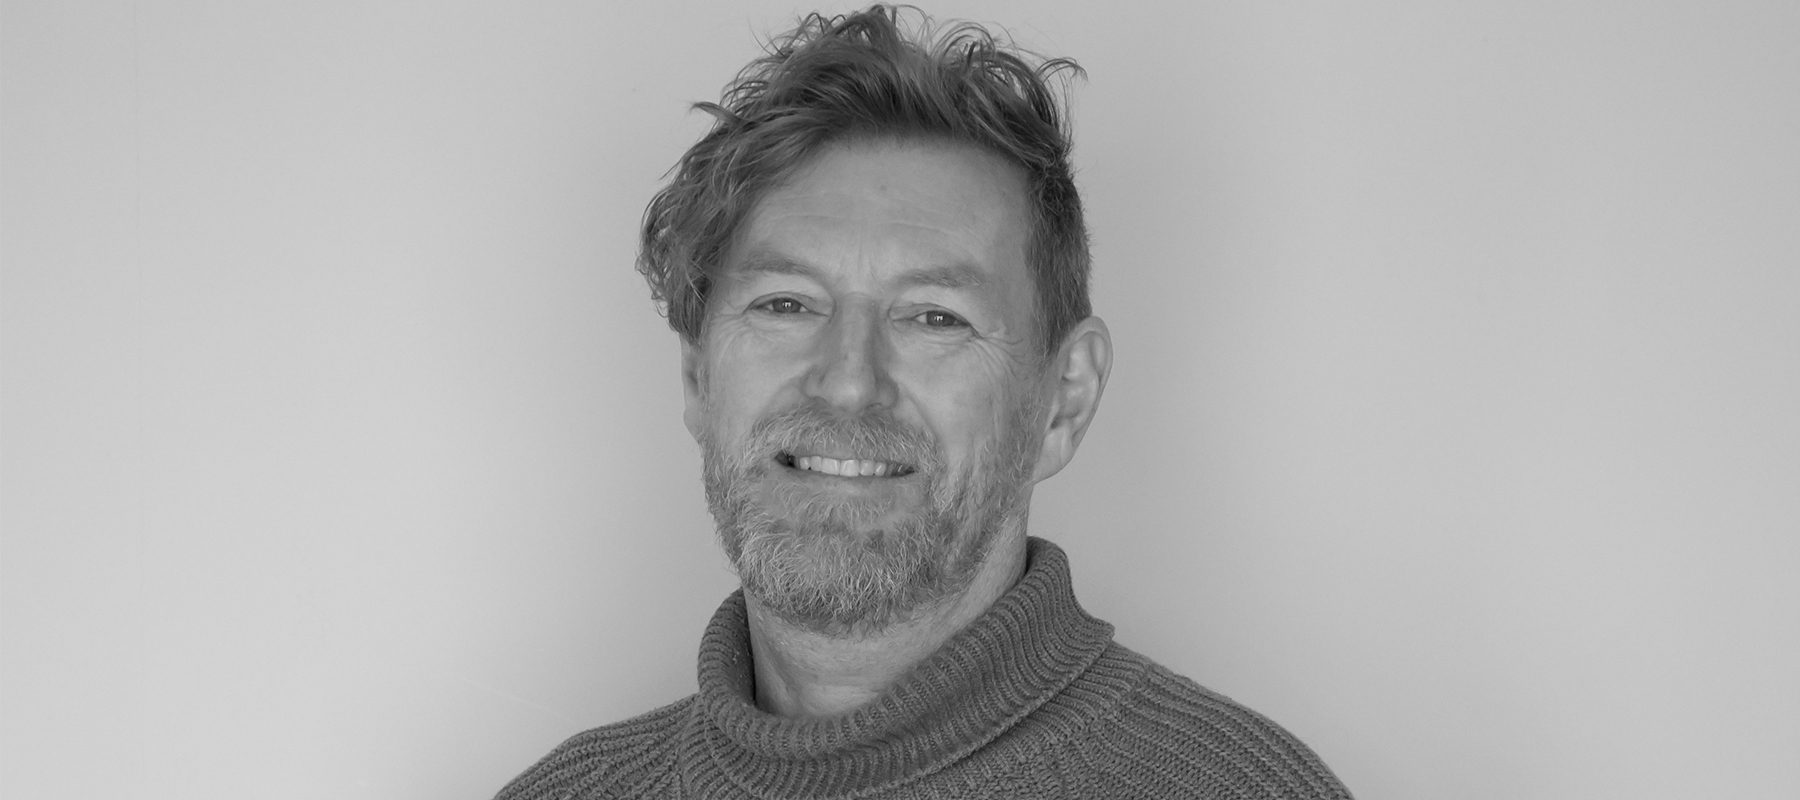 An interview with Fruition director and interior designer Mark Green